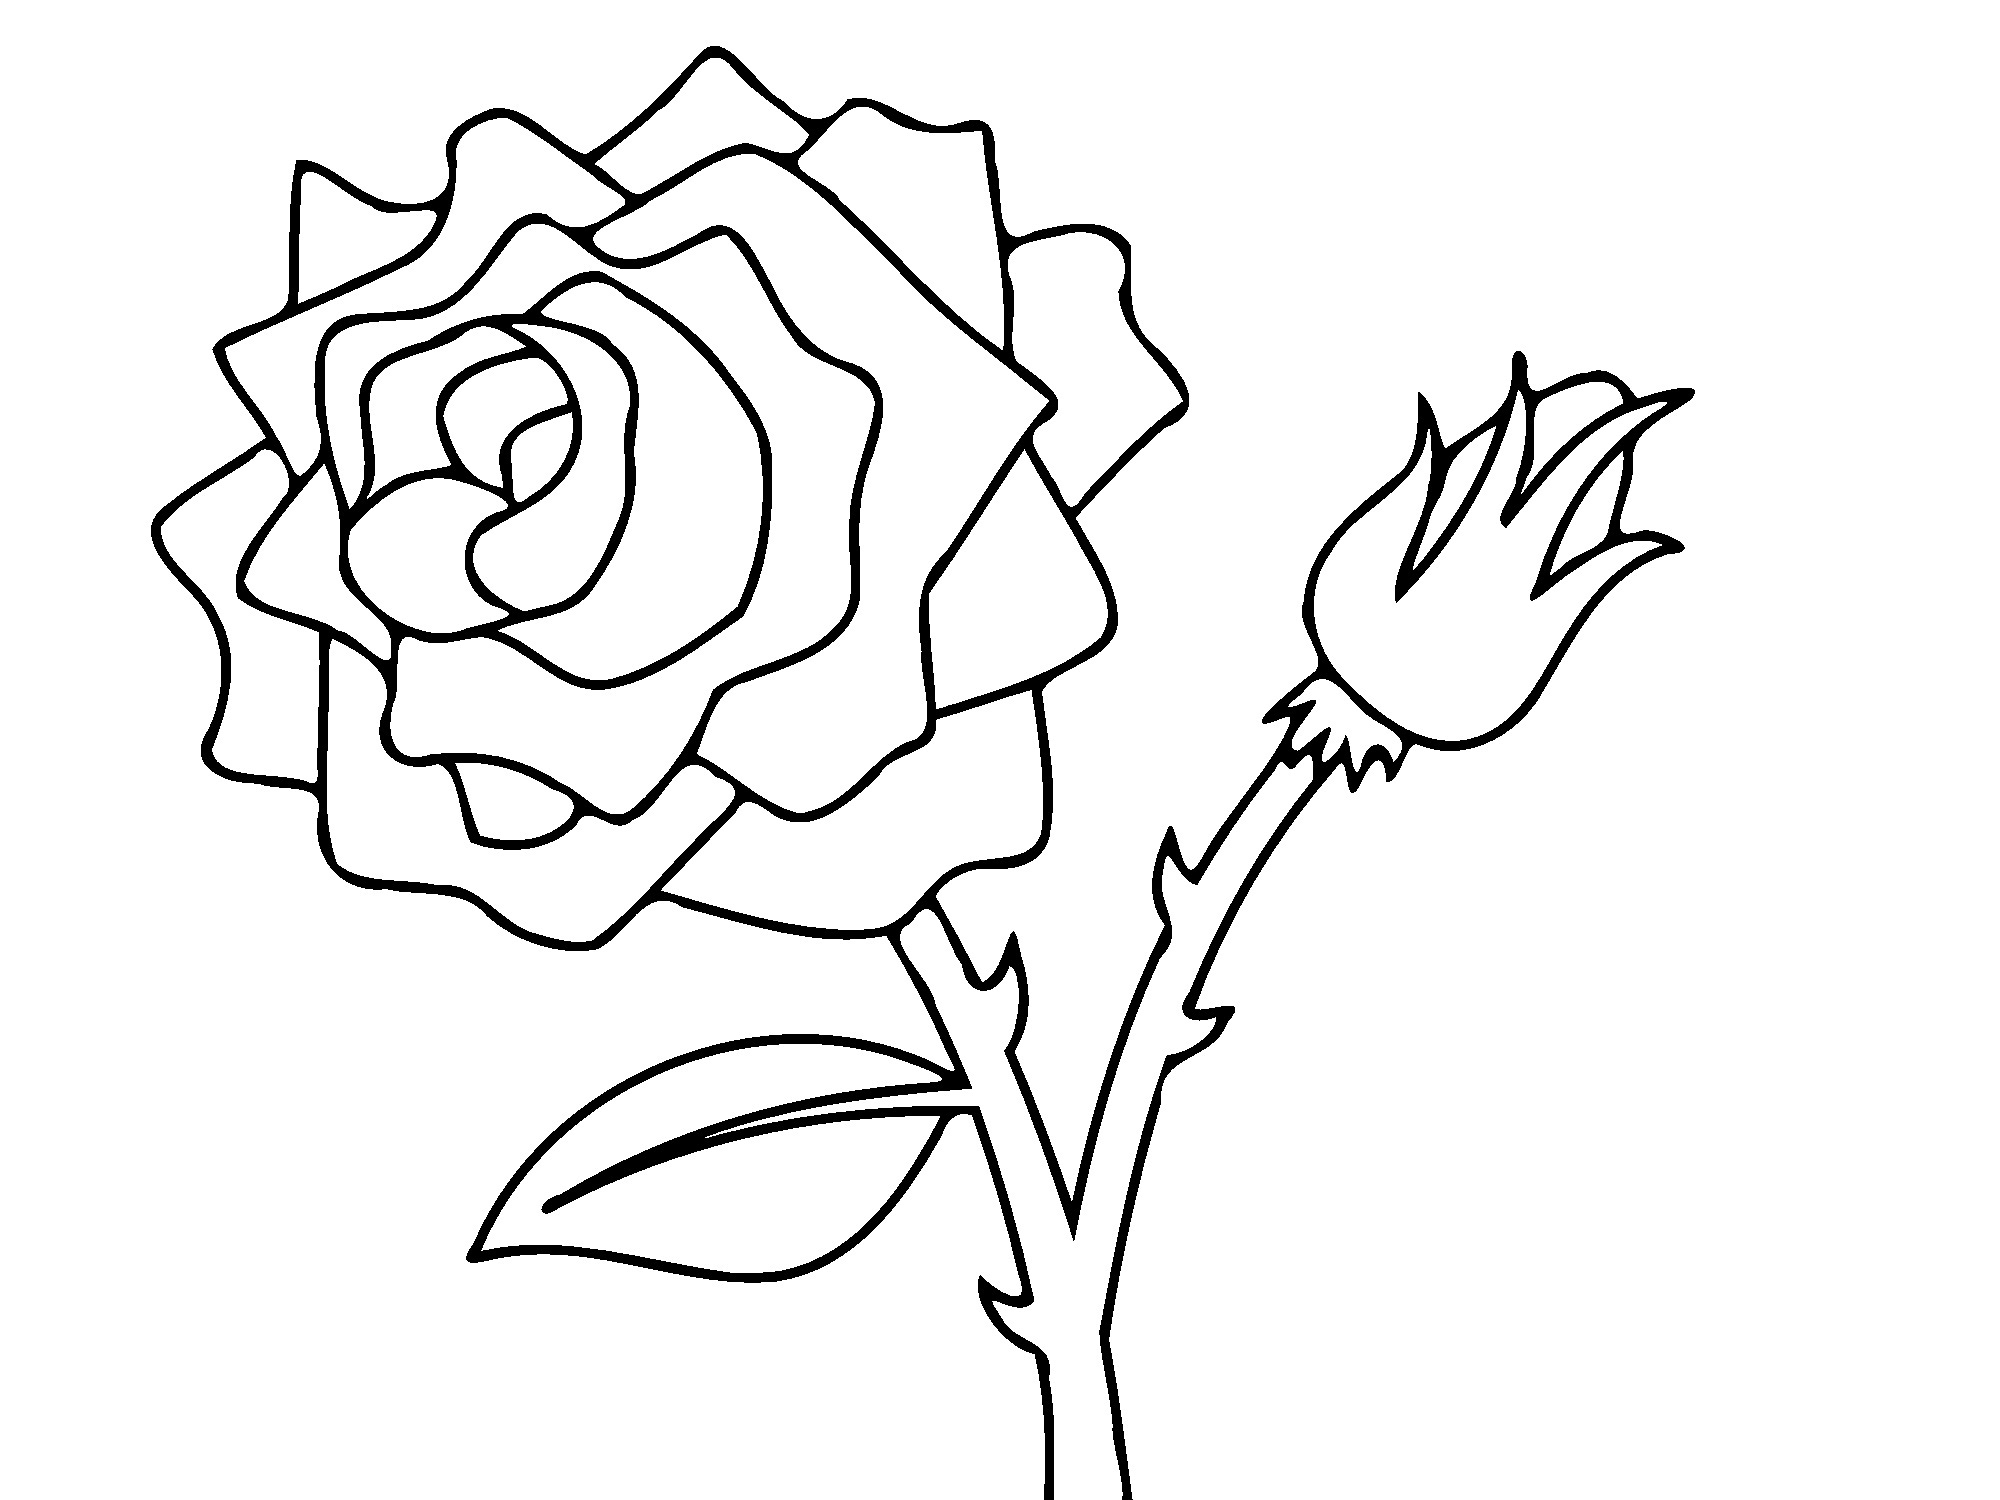 Thorn Bush Drawing At Getdrawings Free For Personal Use Thorn